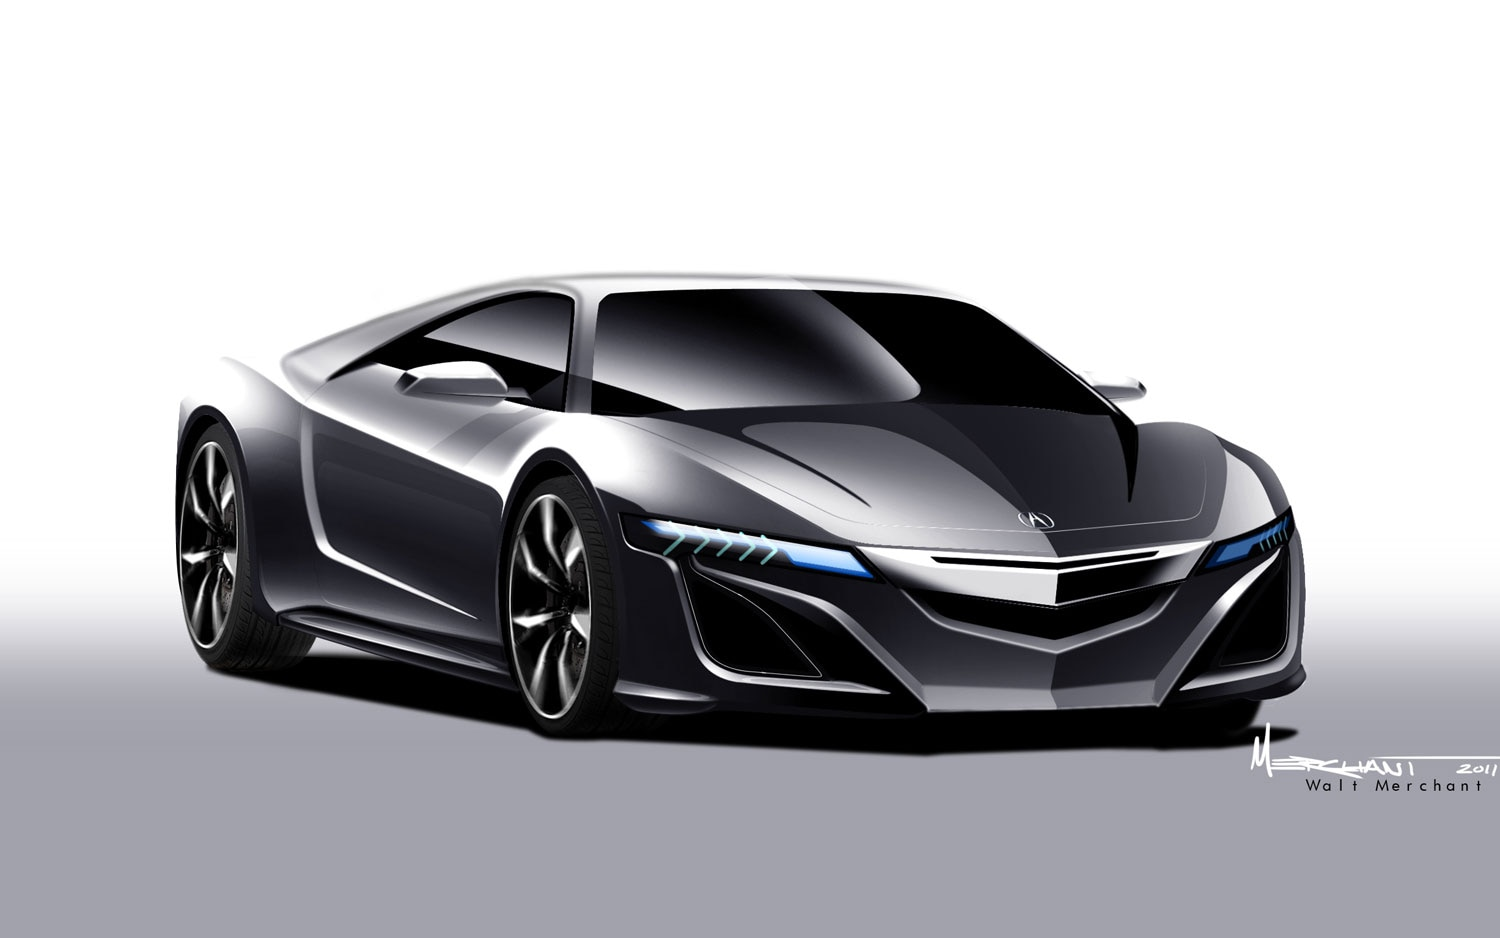 2015 Acura NSX Conceptual Rendering Front View1